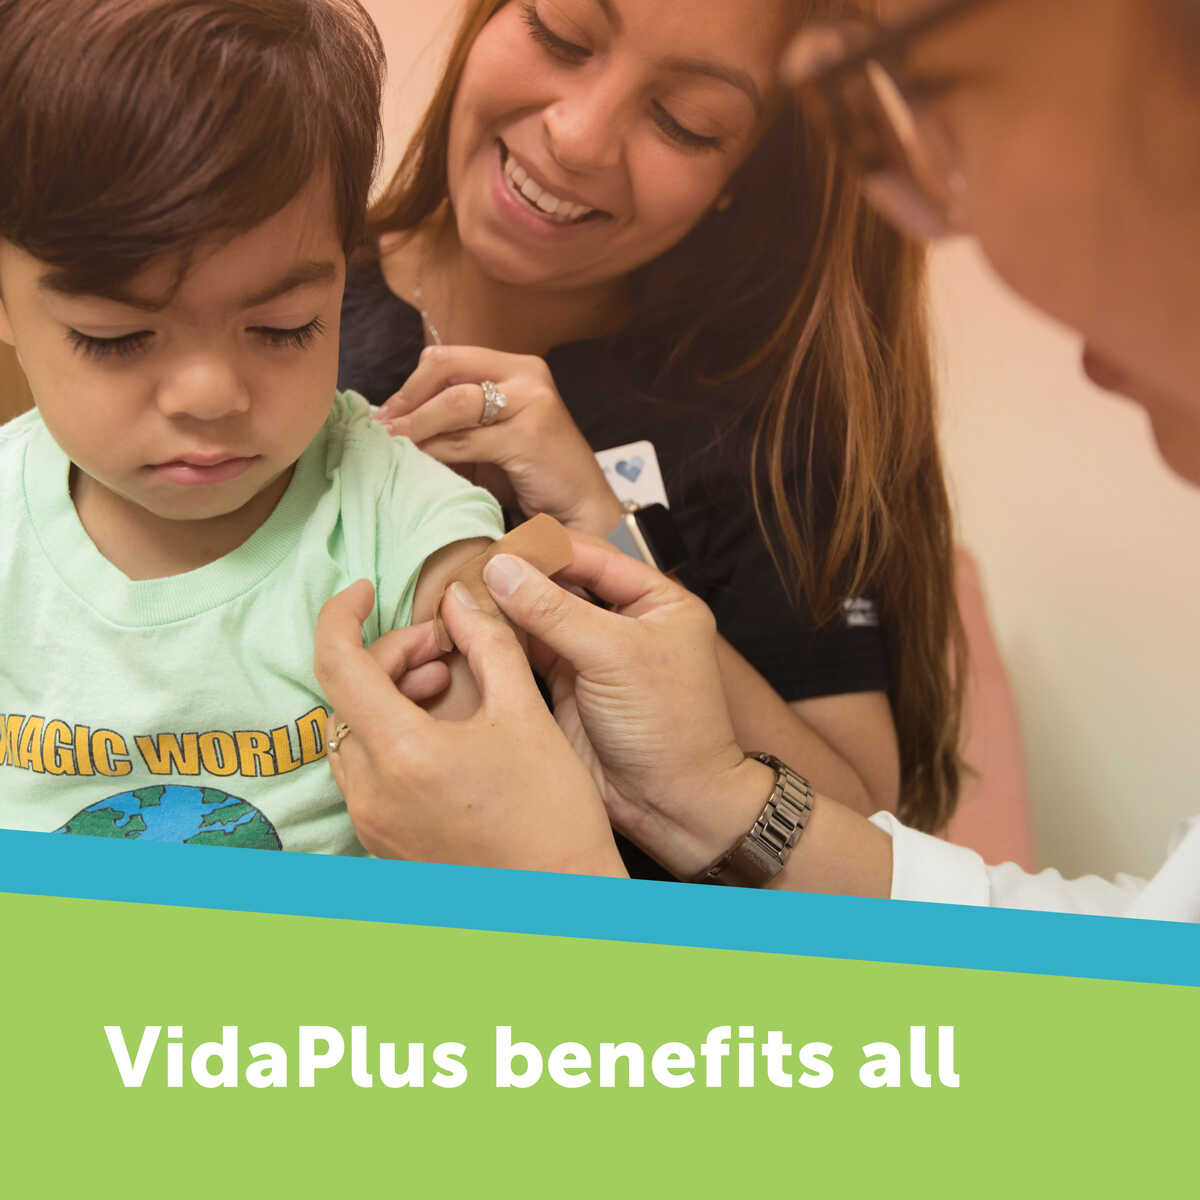 VidaPlus benefits all.